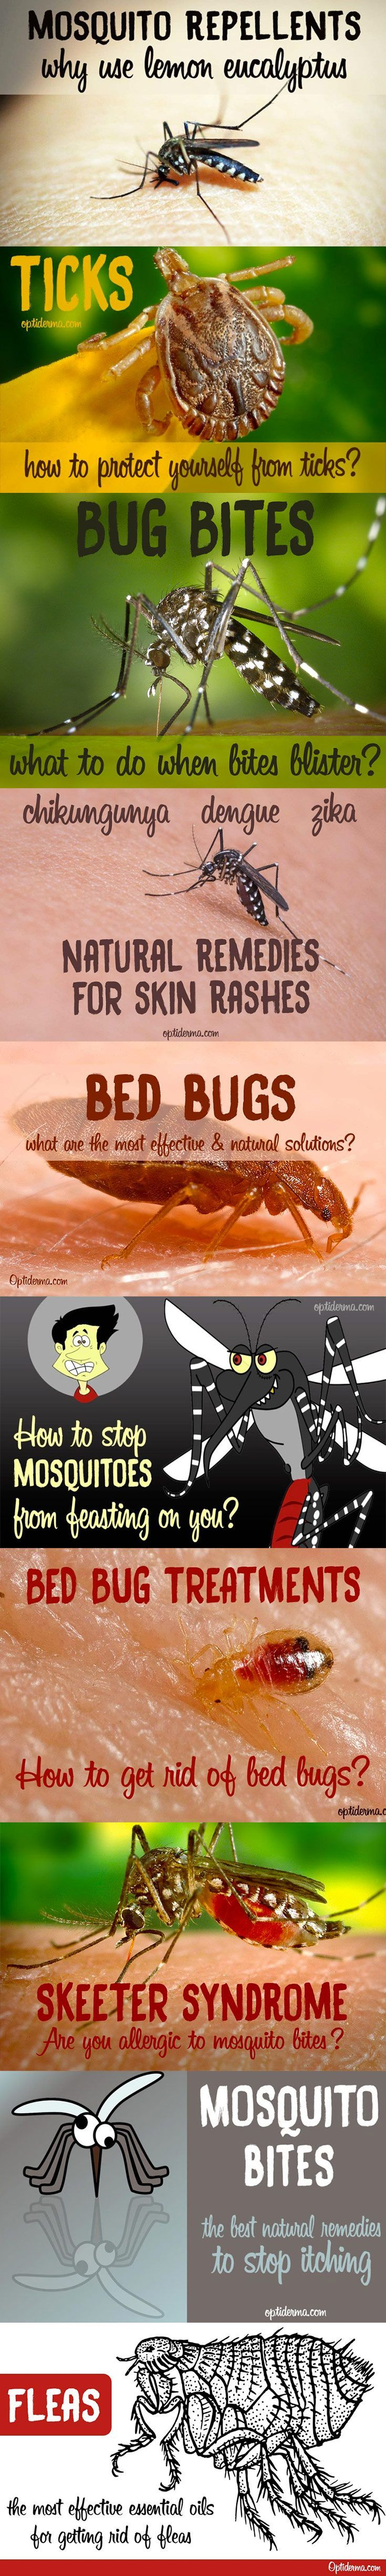 Are you sick of being bitten by mosquitoes? Is your home infested with bed bugs?Have you been bitten by a tick? Are you scared by the diseases mosquitoes and ticks carry?Prevent and treat insect bites with effective natural remedies!Here's a selection of populararticles to help you deal with bug bites: https://www.optiderma.com/topics/insect-bites-mosquito-tick-bedbug/